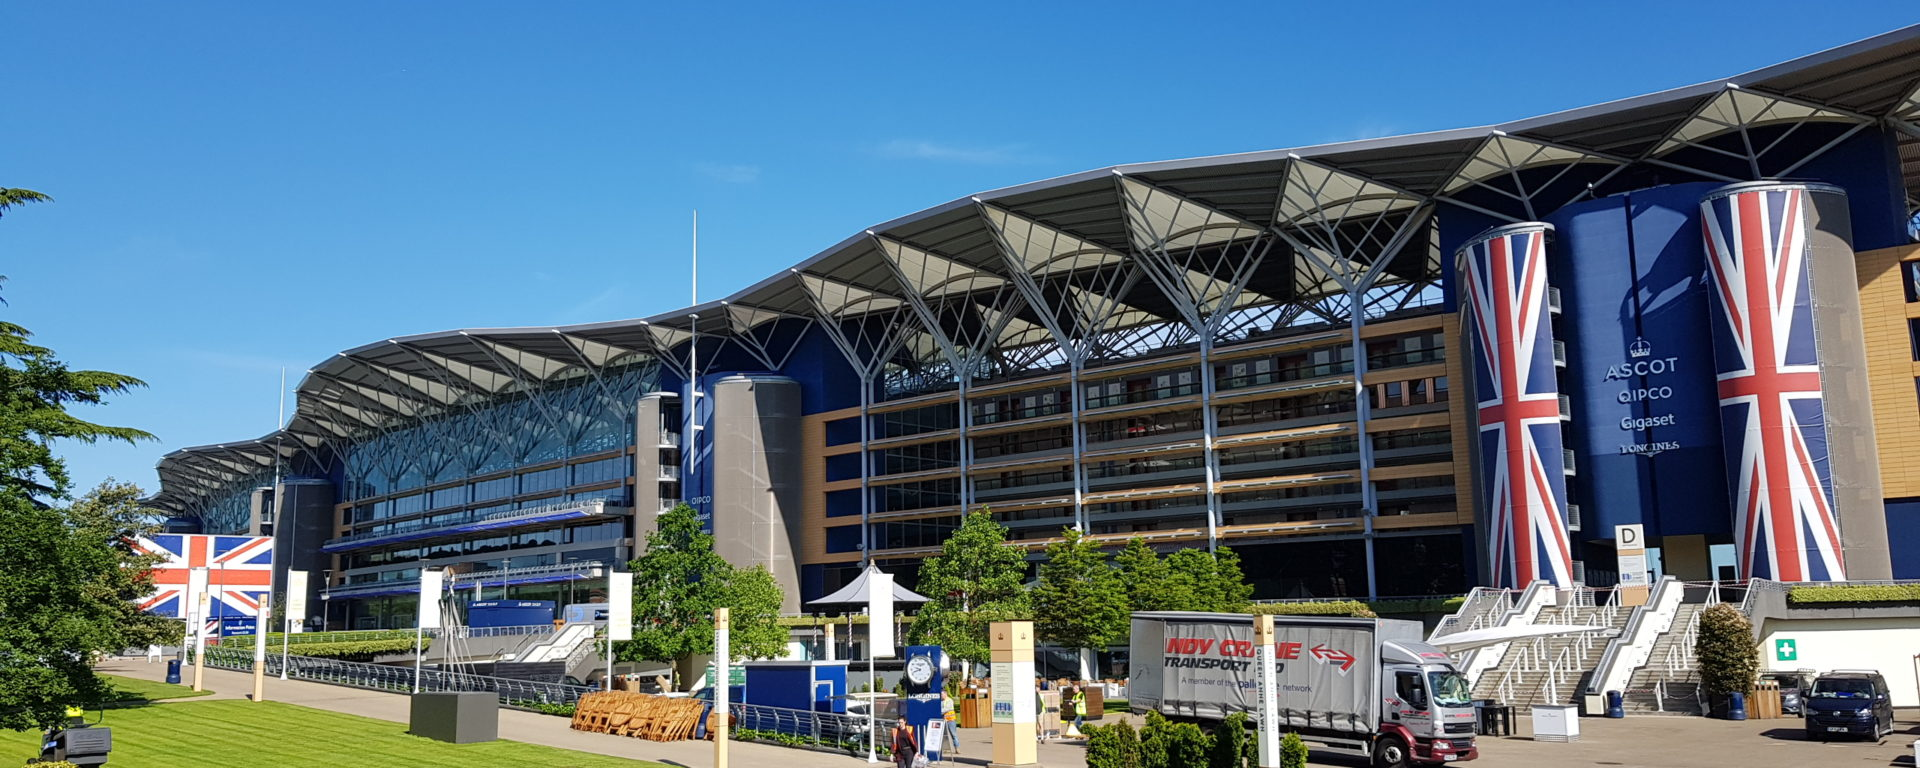 ascot racecourse great british expo